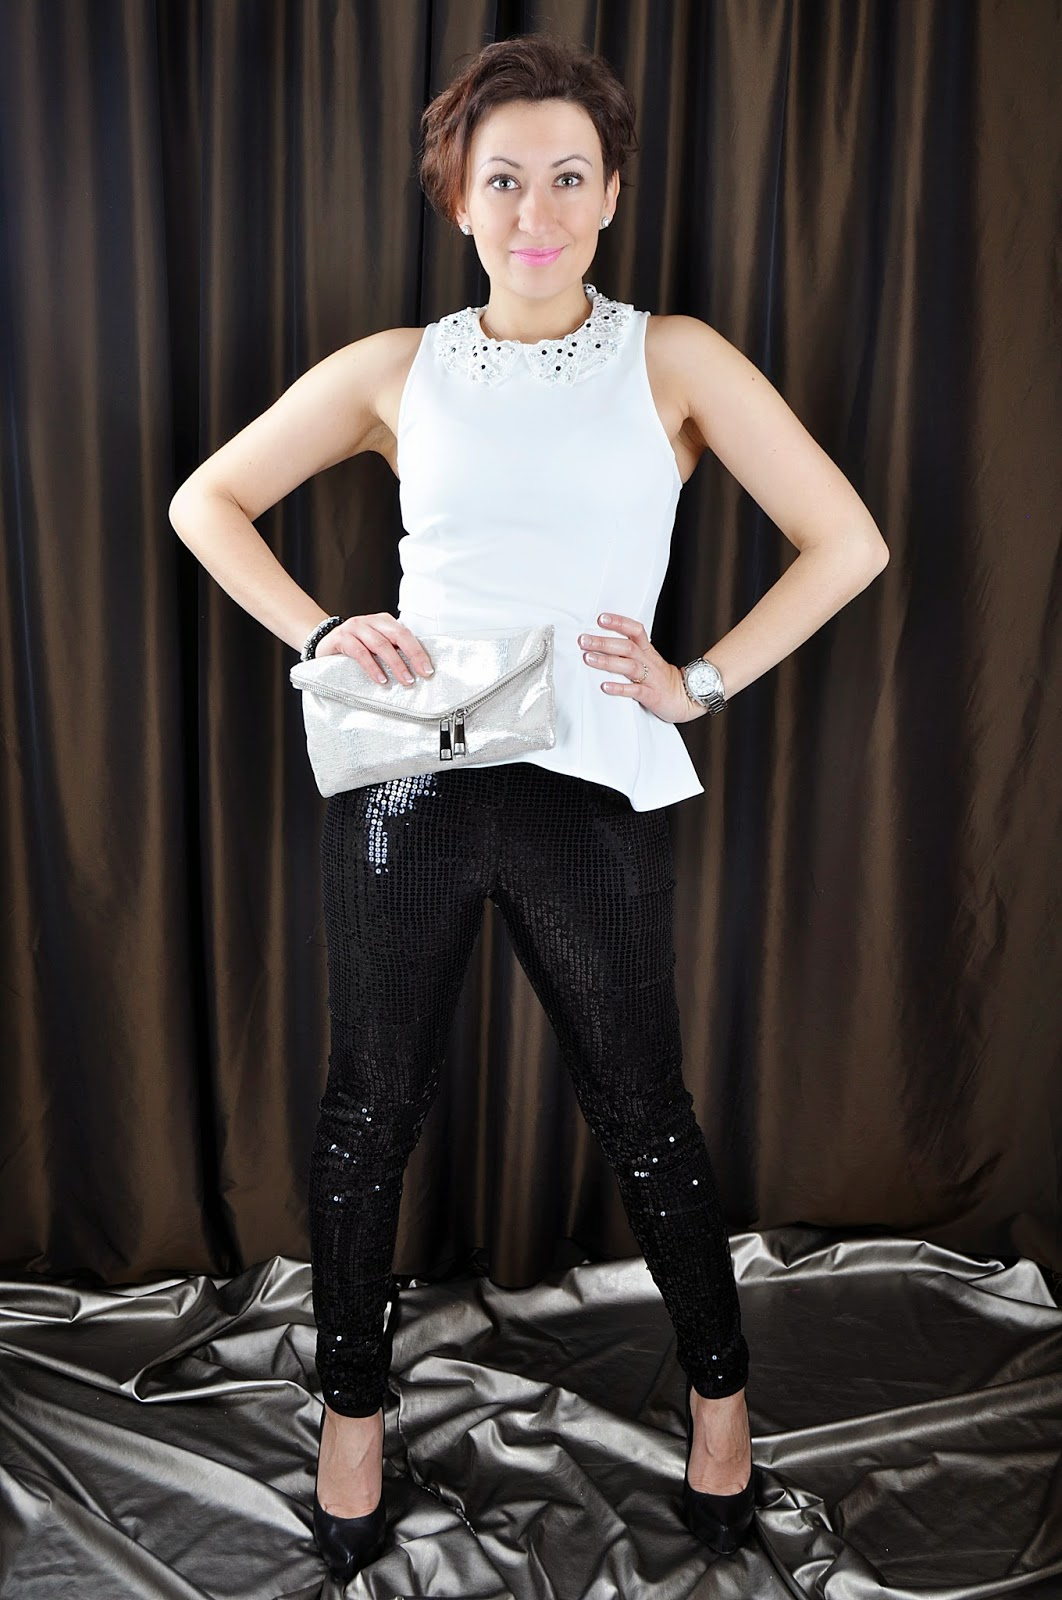 Black and White Outfit, Fashion, moda, New Look Leather heels, New Year's Eve Outfit, Partywear, River Island silver clutch bag, Sequin black leggins, Styl, Stylizacja, TOPSHOP white top